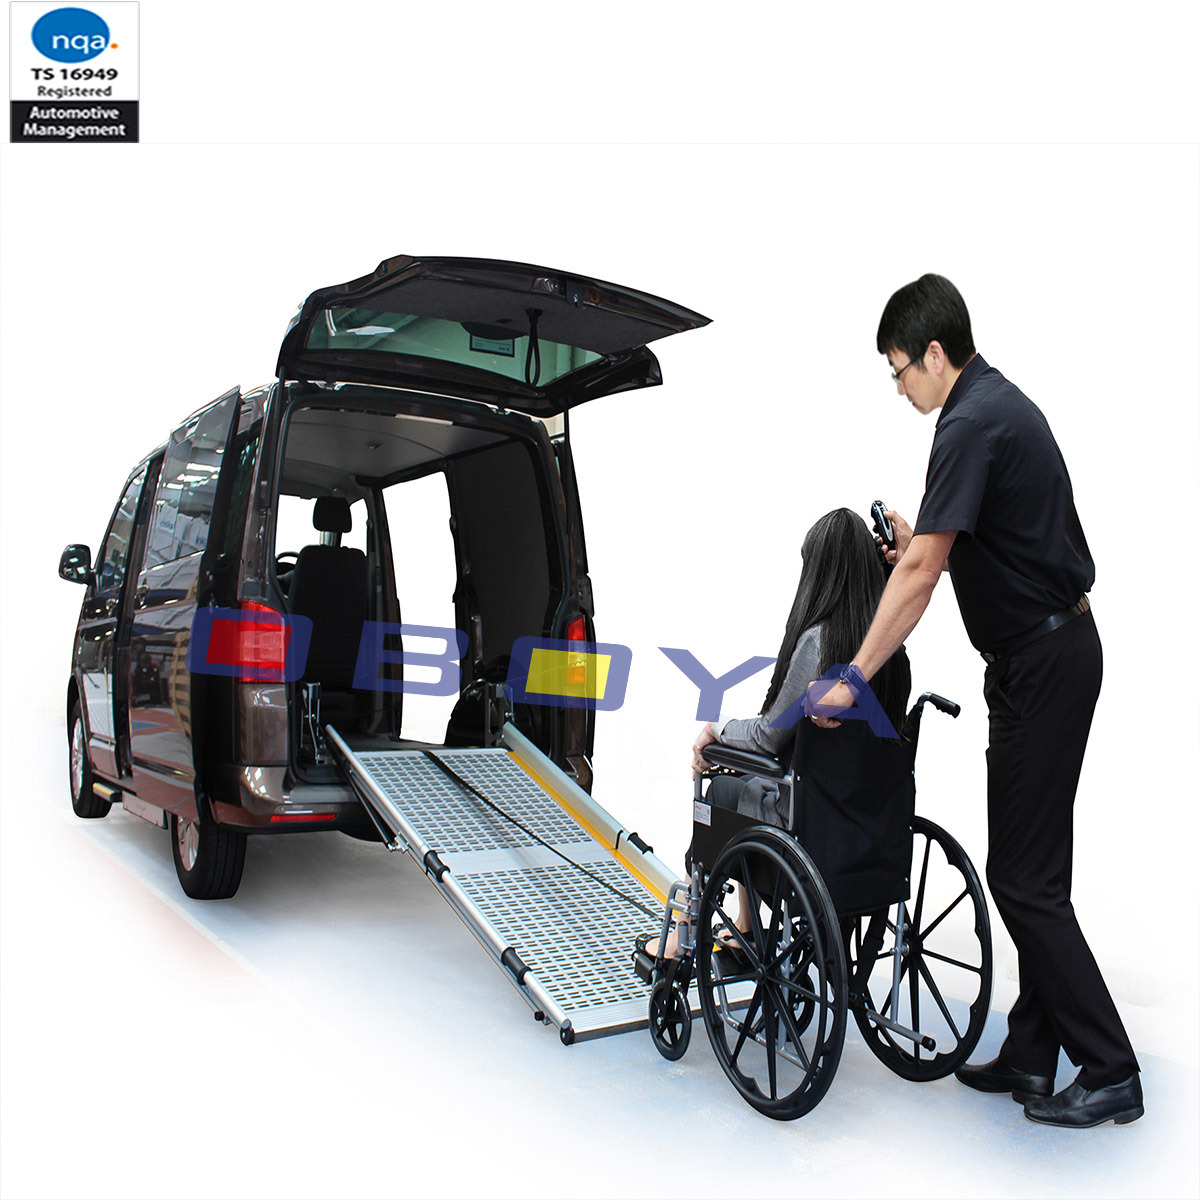 Auto Accessory, Aluminium Vehicle Access Ramp